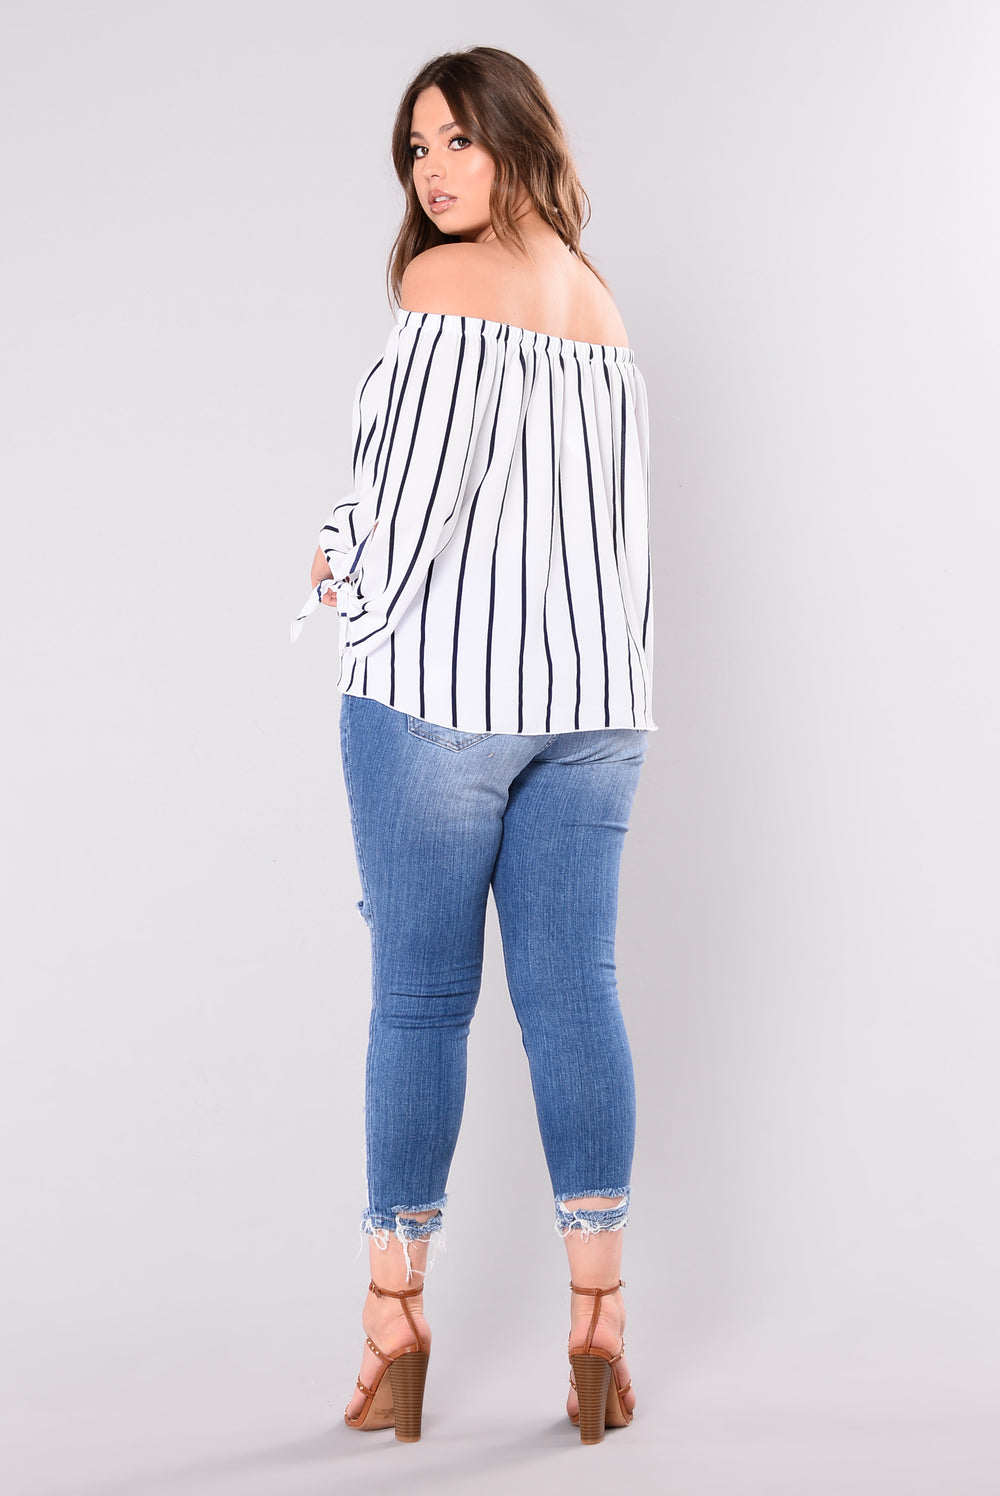 Mind Games Top - Ivory/Navy